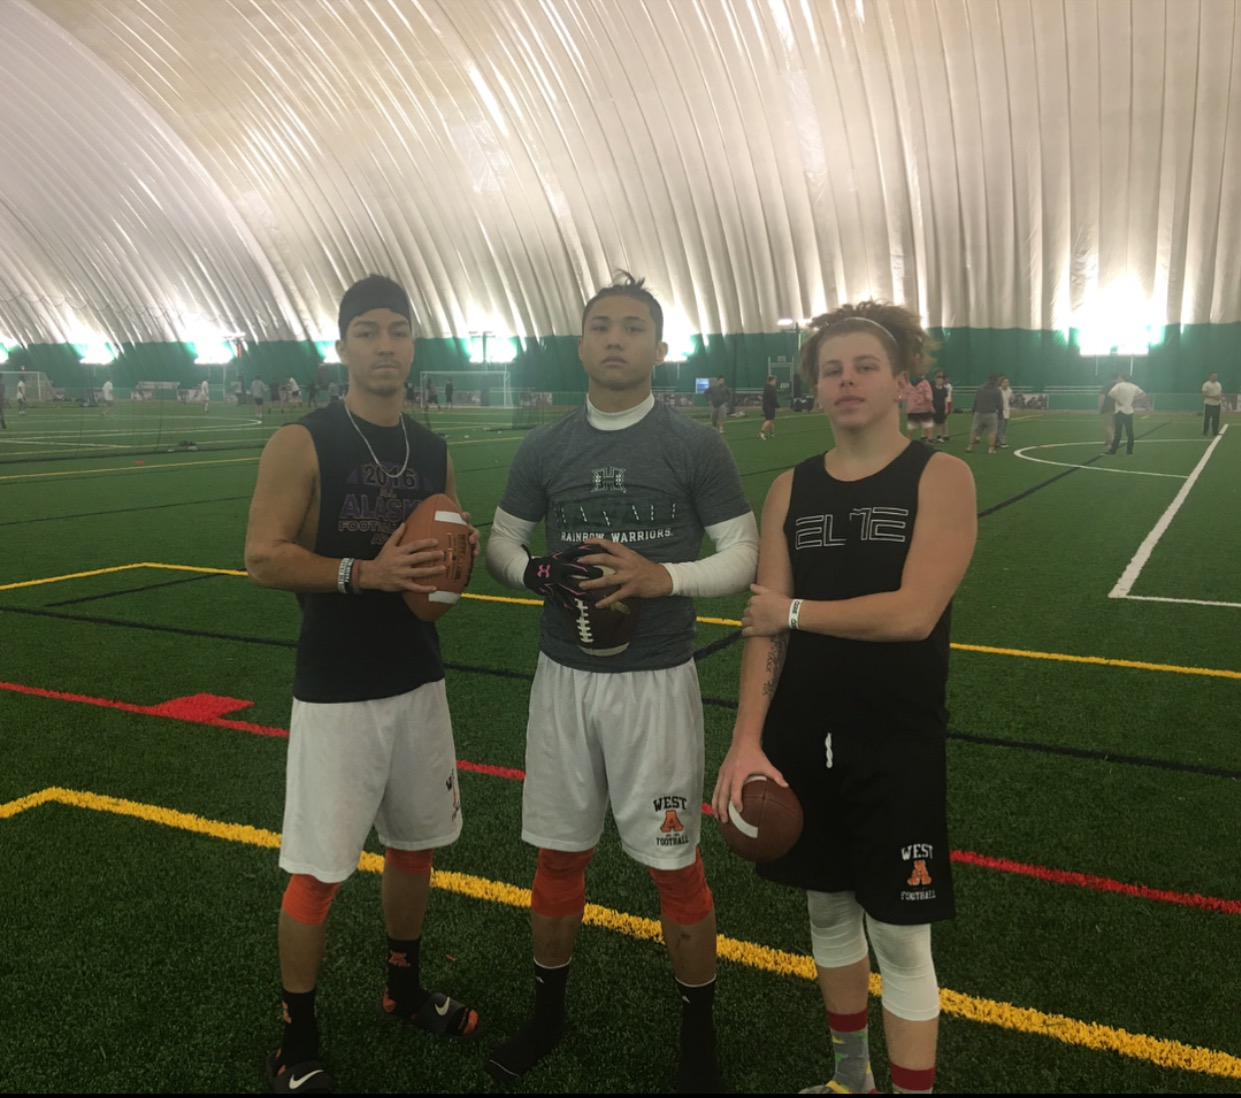 Bubba Mendoza, Dhar Montalbo and Koko Ortiz (left to right) playing flagfootball at The Dome on Janurary 25th to play flagfootball together